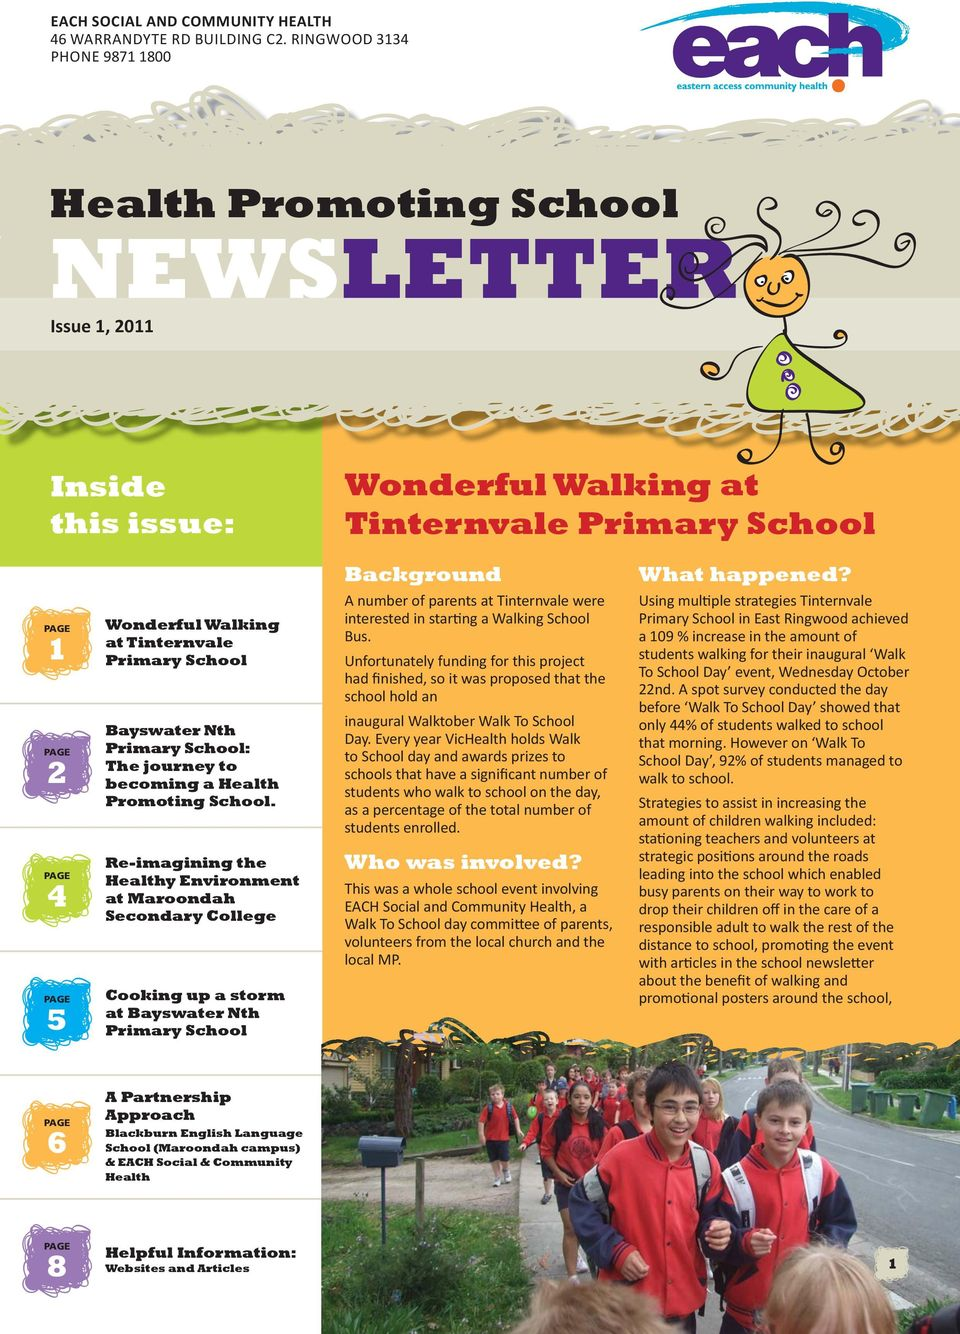 School: The journey to becoming a Health Promoting School.